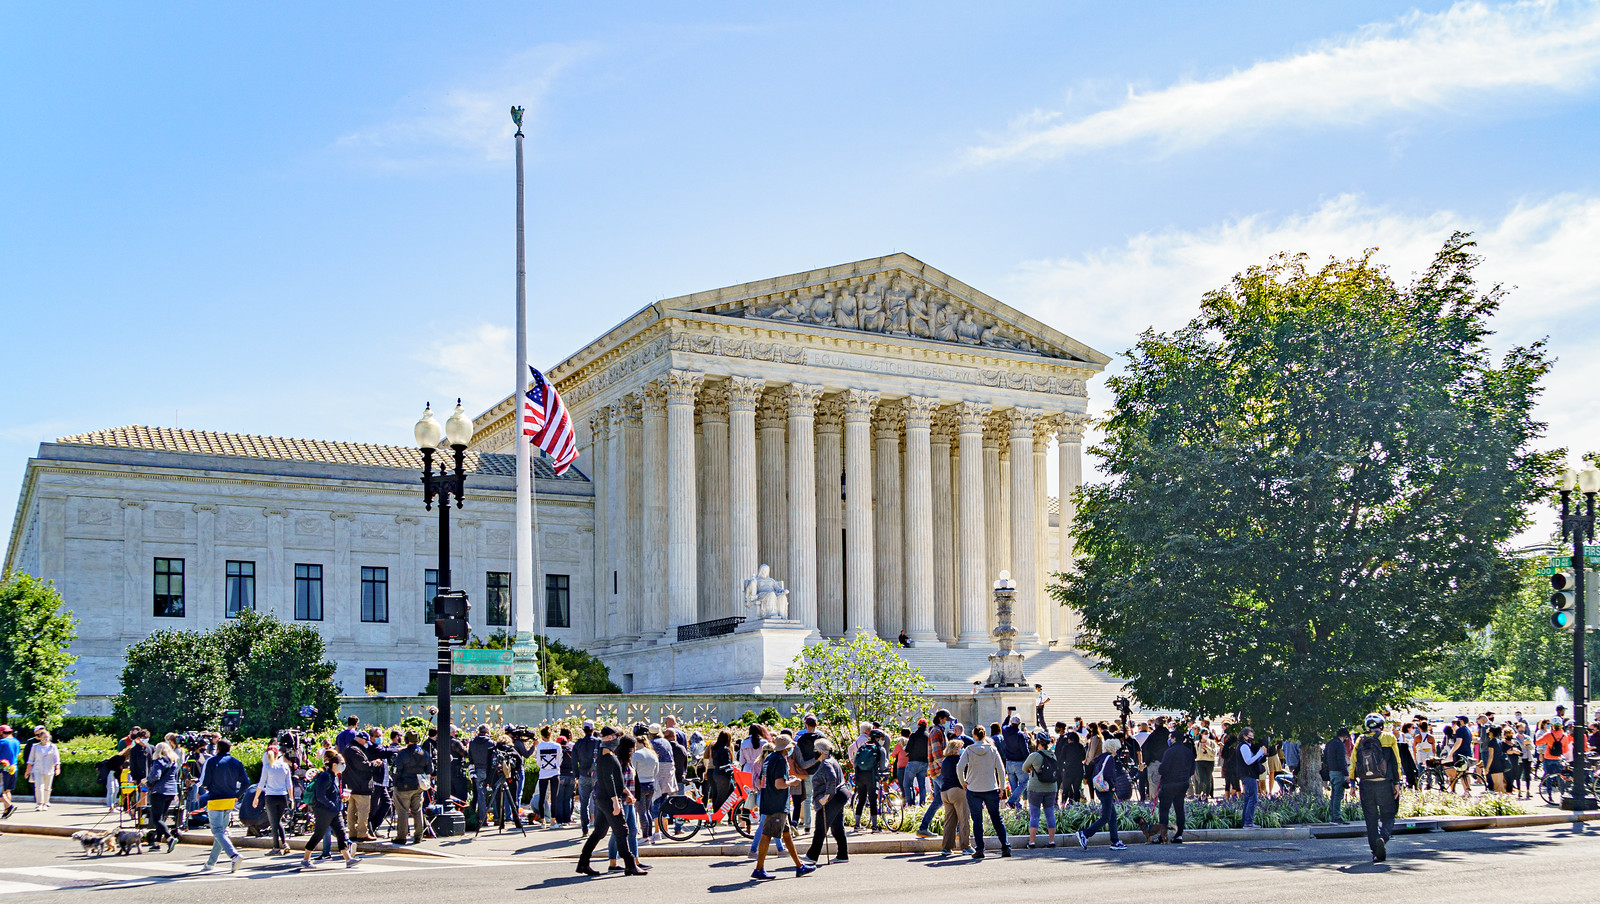 2020.09.19 Grieving for Ruth Bader Ginsburg, Washington, DC USA263 66233